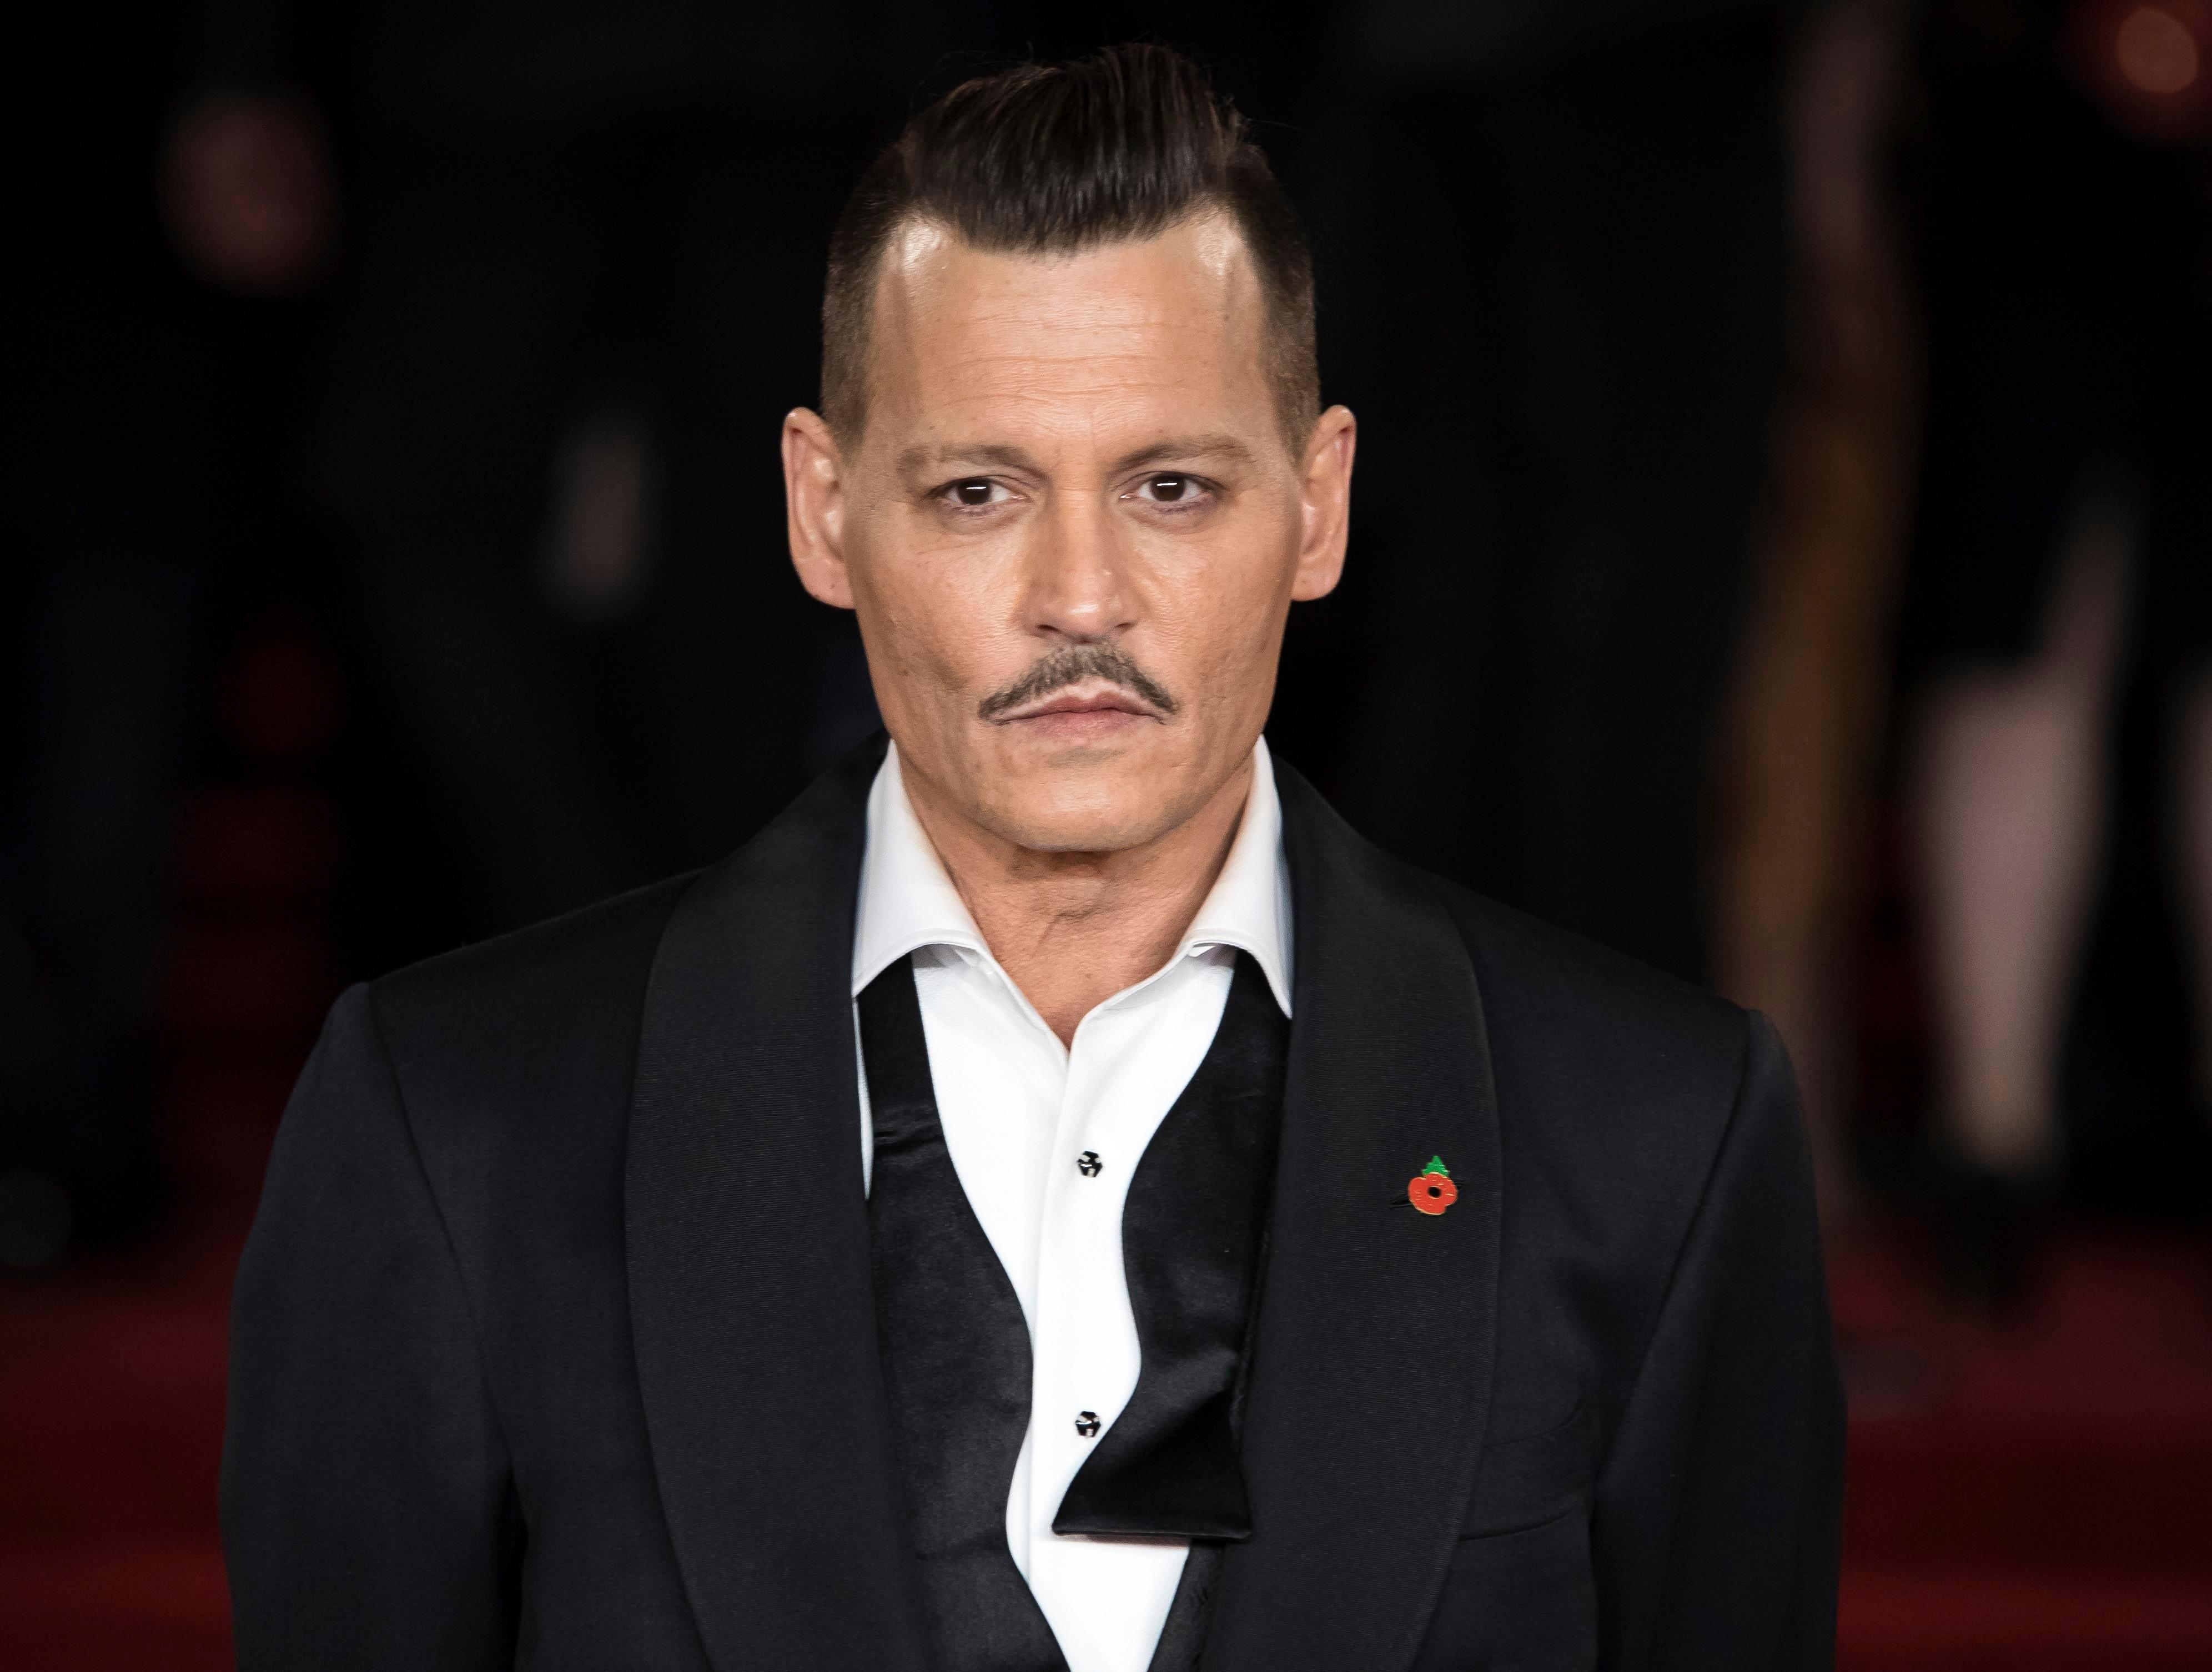 """Johnny Depp 'attacked crew member and screamed """"I'll give you $100k to punch me in the face"""" on Biggie Smalls set'"""